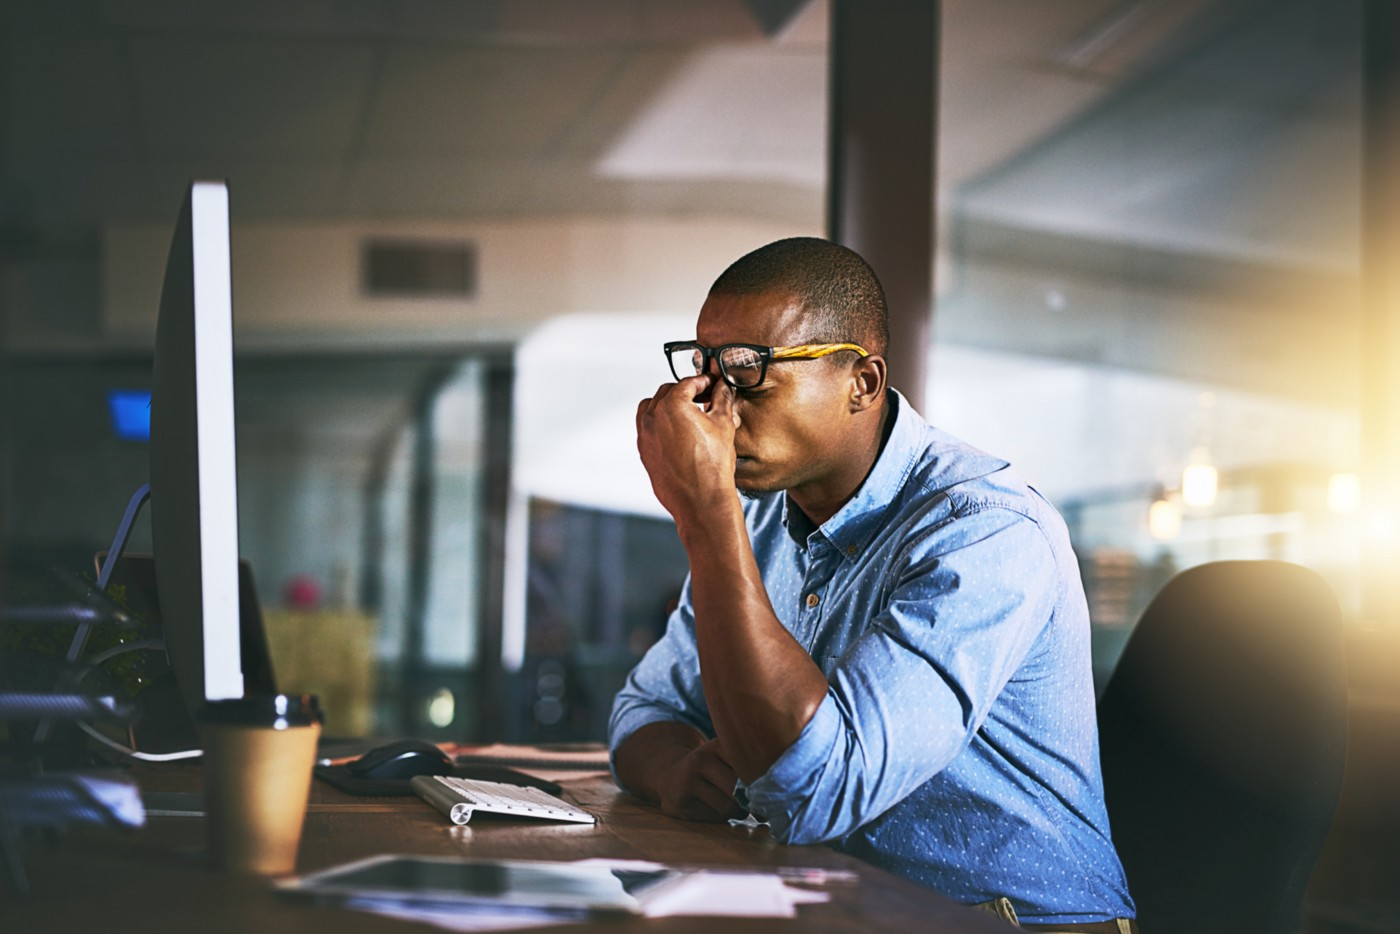 A photo of a frustrated entrepreneur sitting at his desk, pinching his eyelids.